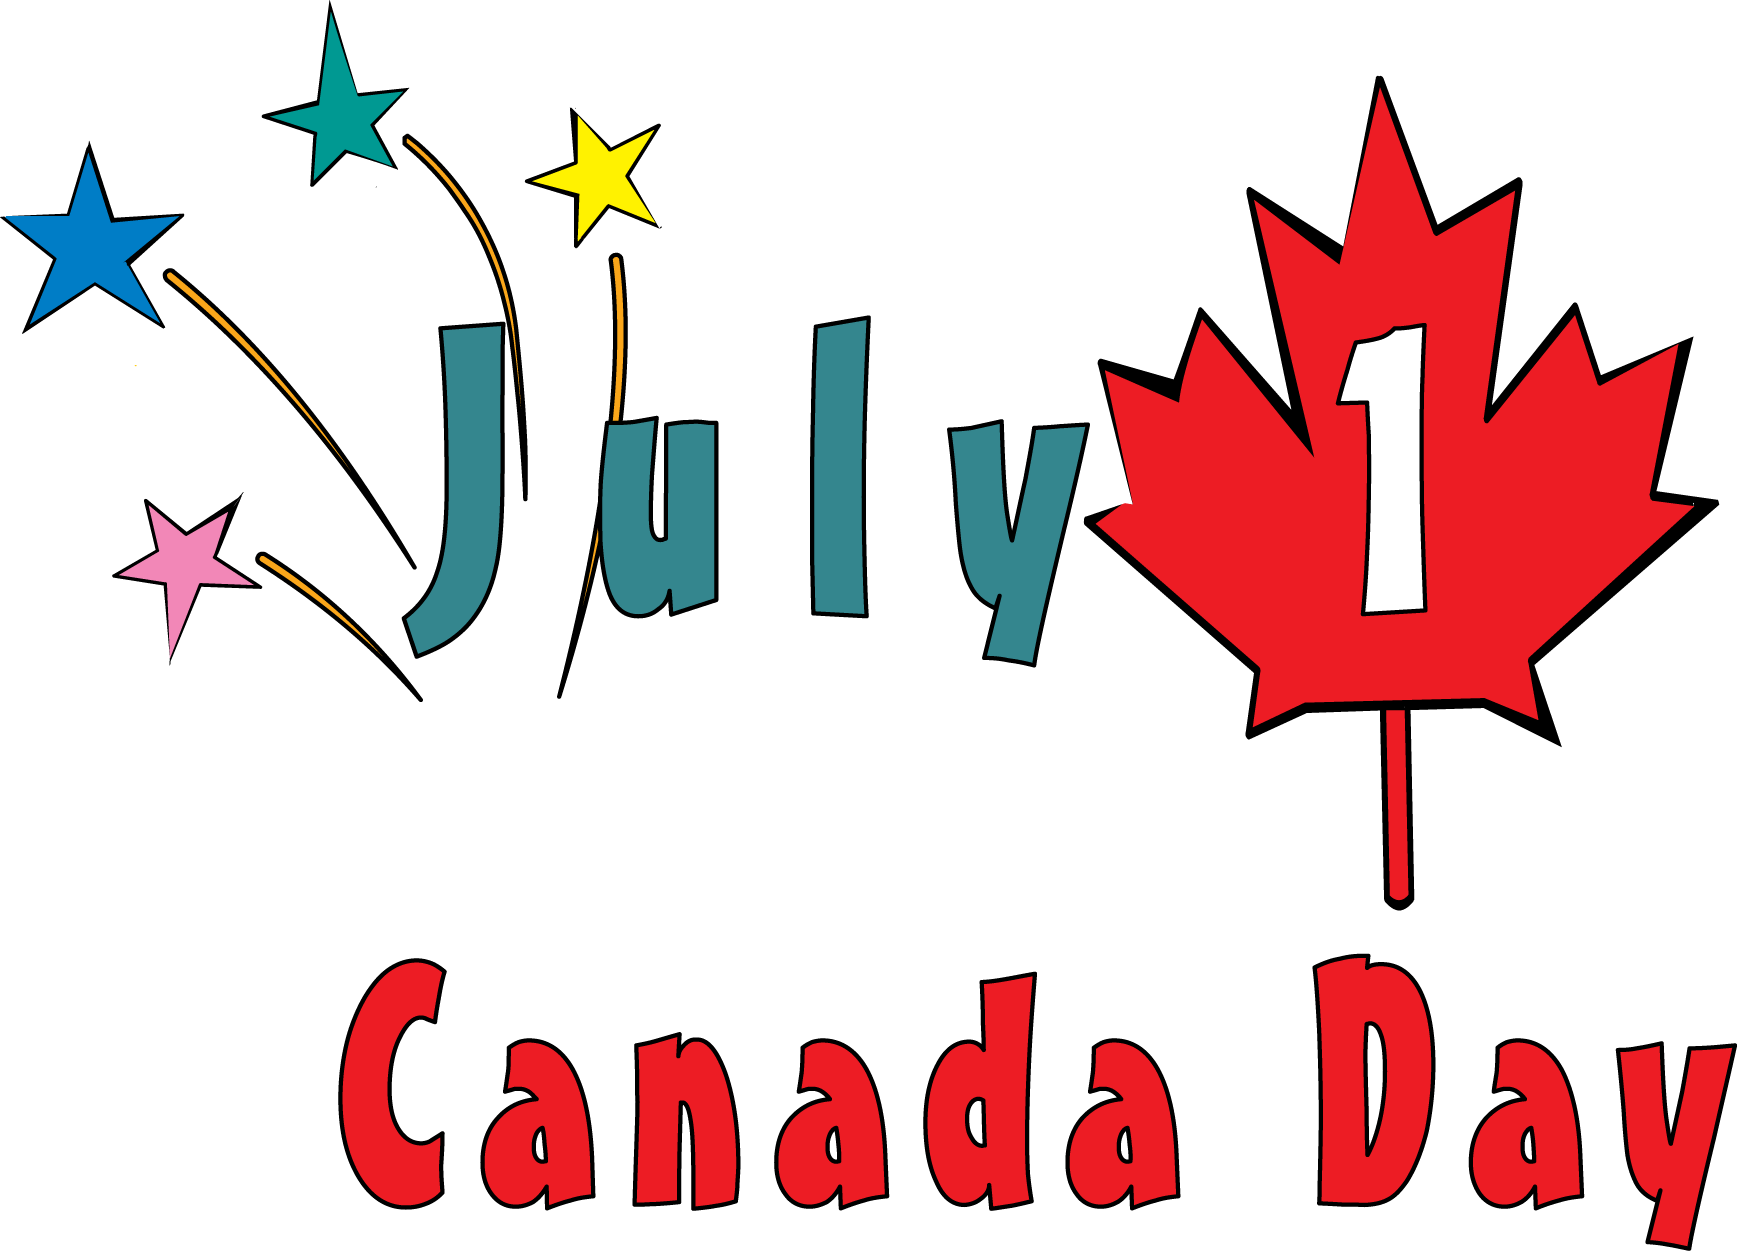 Canada Day Backgrounds, Compatible - PC, Mobile, Gadgets| 1737x1251 px